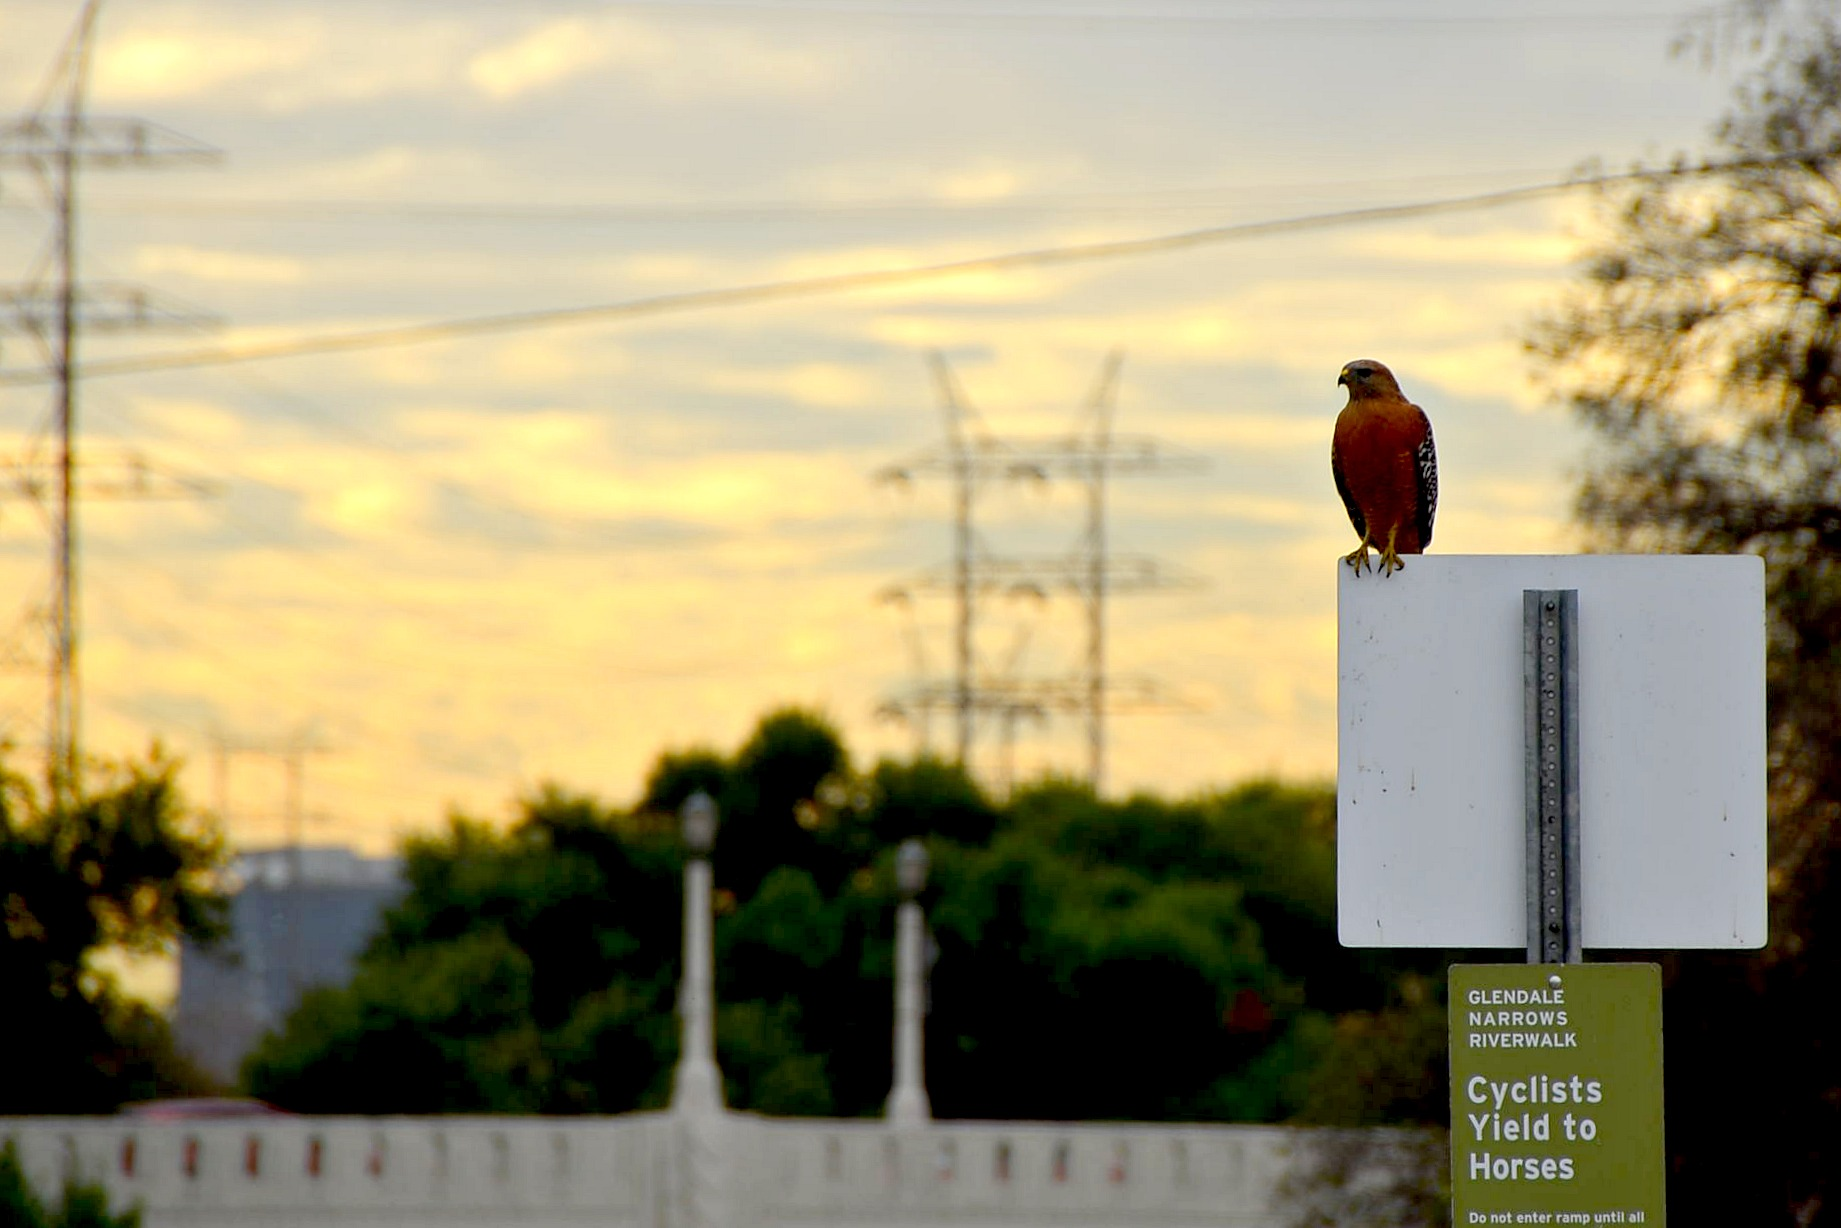 Let's go with red-shouldered hawk